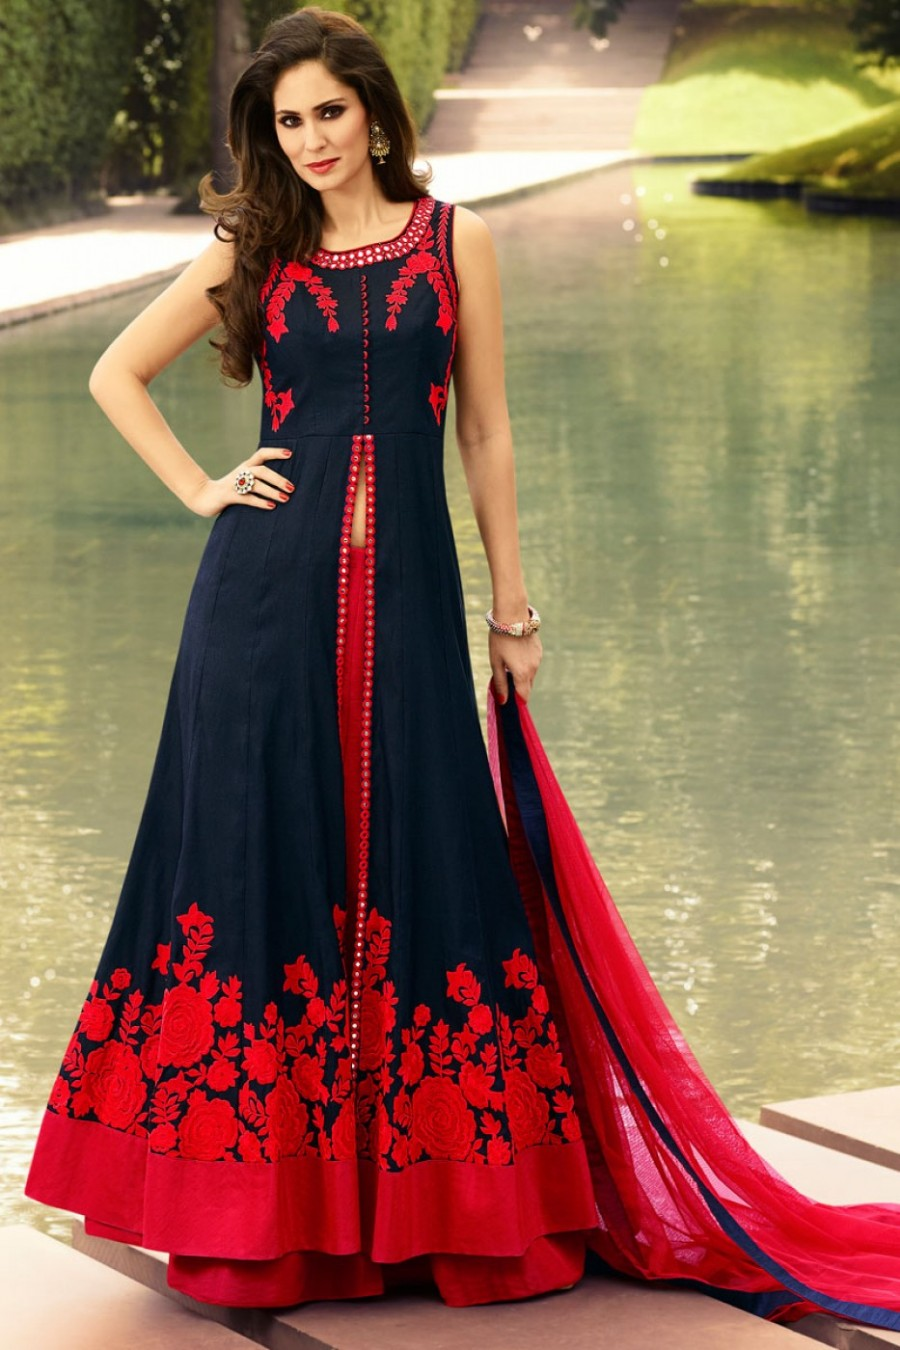 67f27d335 Buy Navy Blue and Red Indo Western Party Wear Lehenga in Raw Silk Fabric  Online